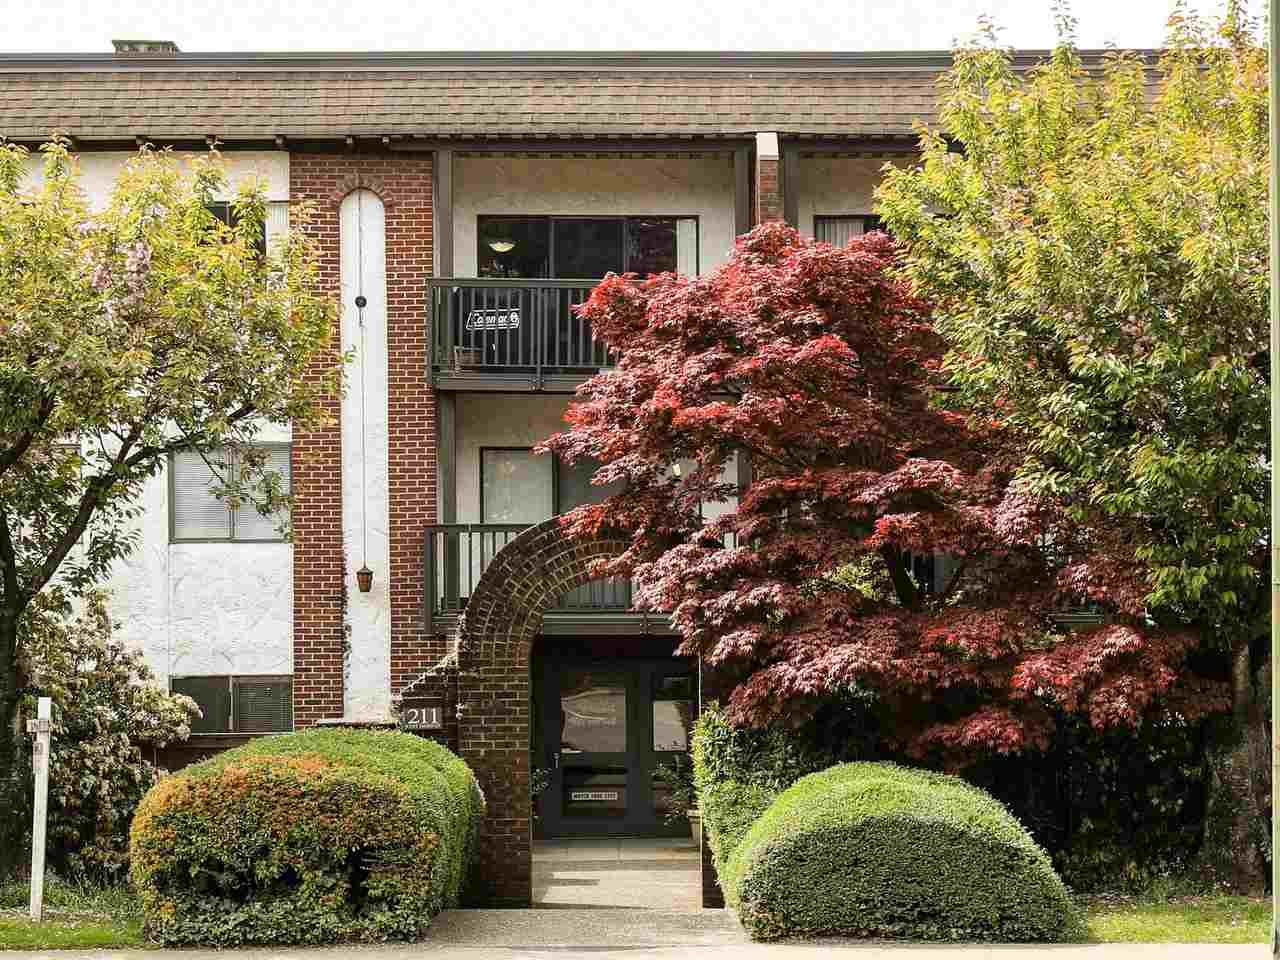 Main Photo: 113 211 W 3RD STREET in North Vancouver: Lower Lonsdale Condo for sale : MLS®# R2165777